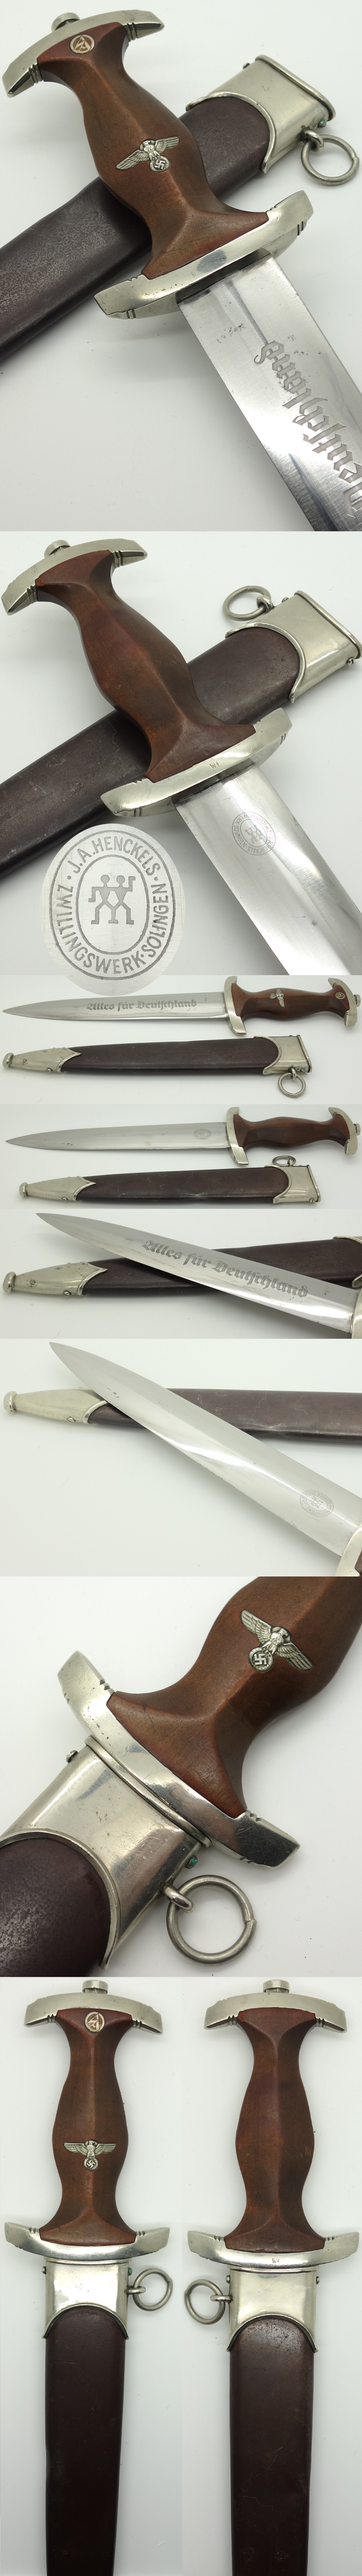 Early SA Dagger by J. A. Henckels